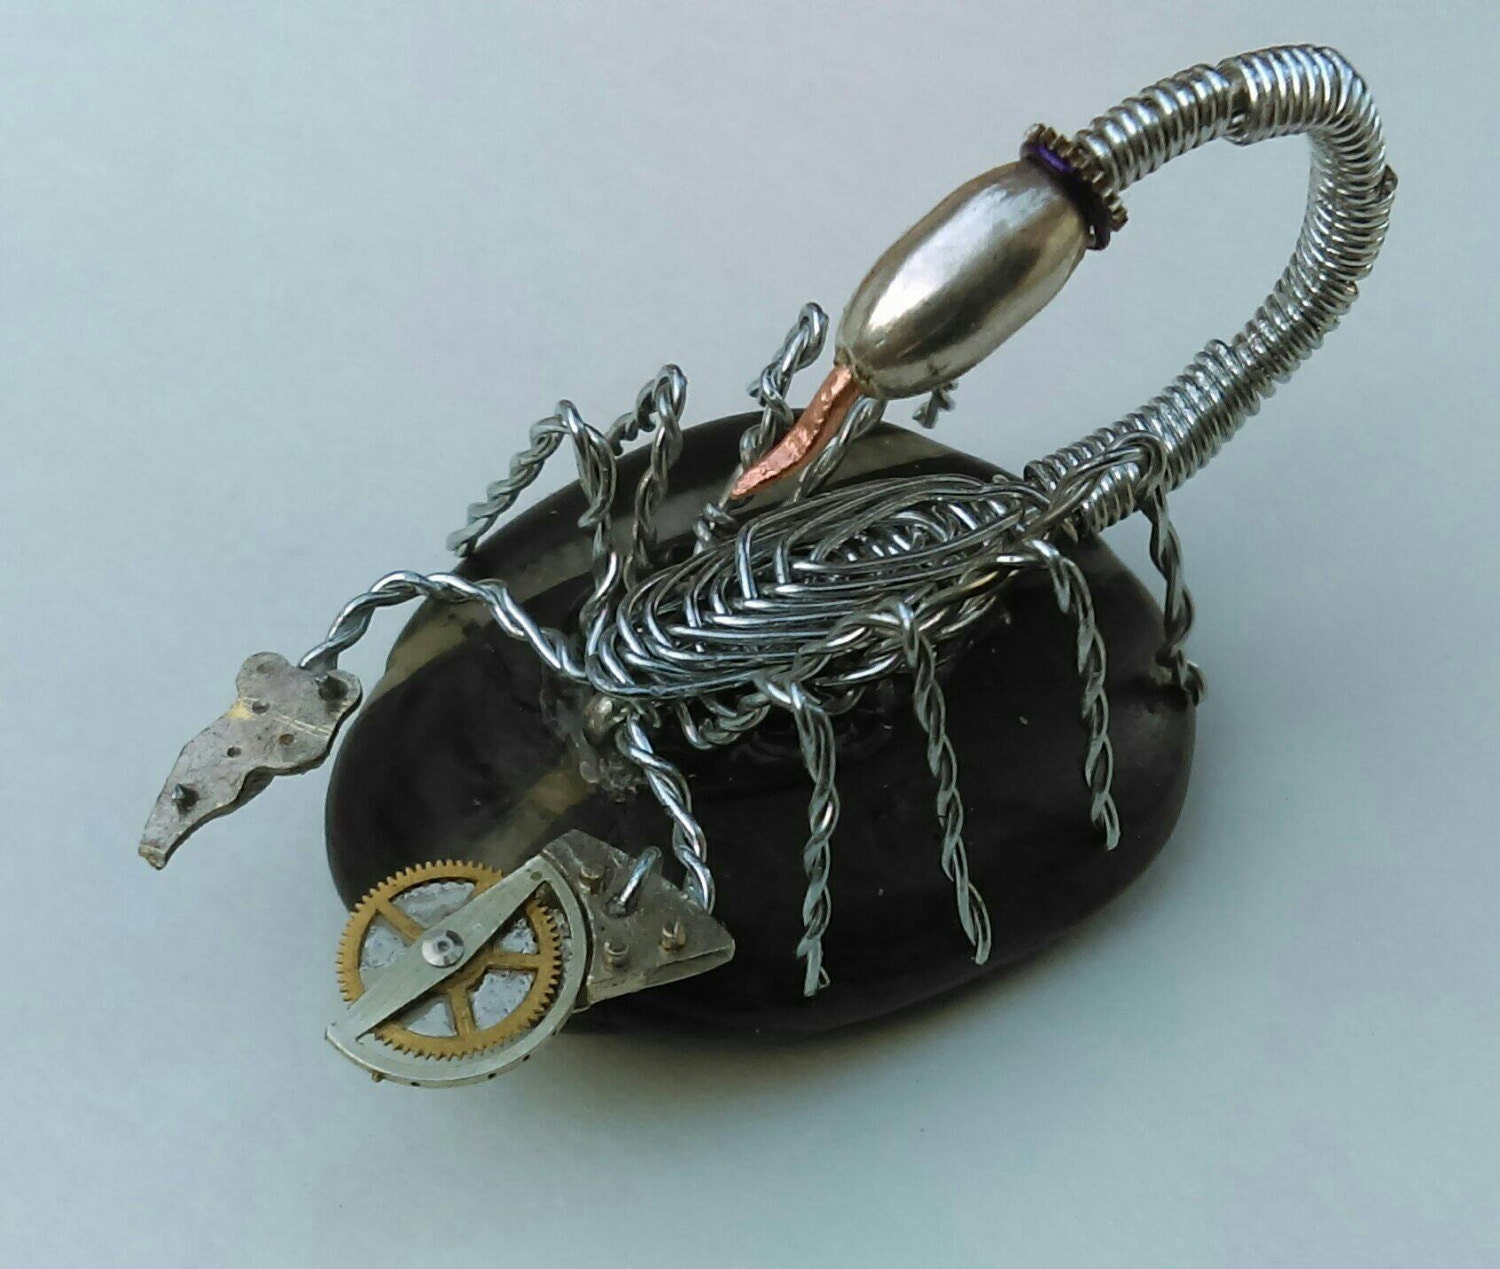 Hand crafted \'Steam Punk\' style wire scorpion